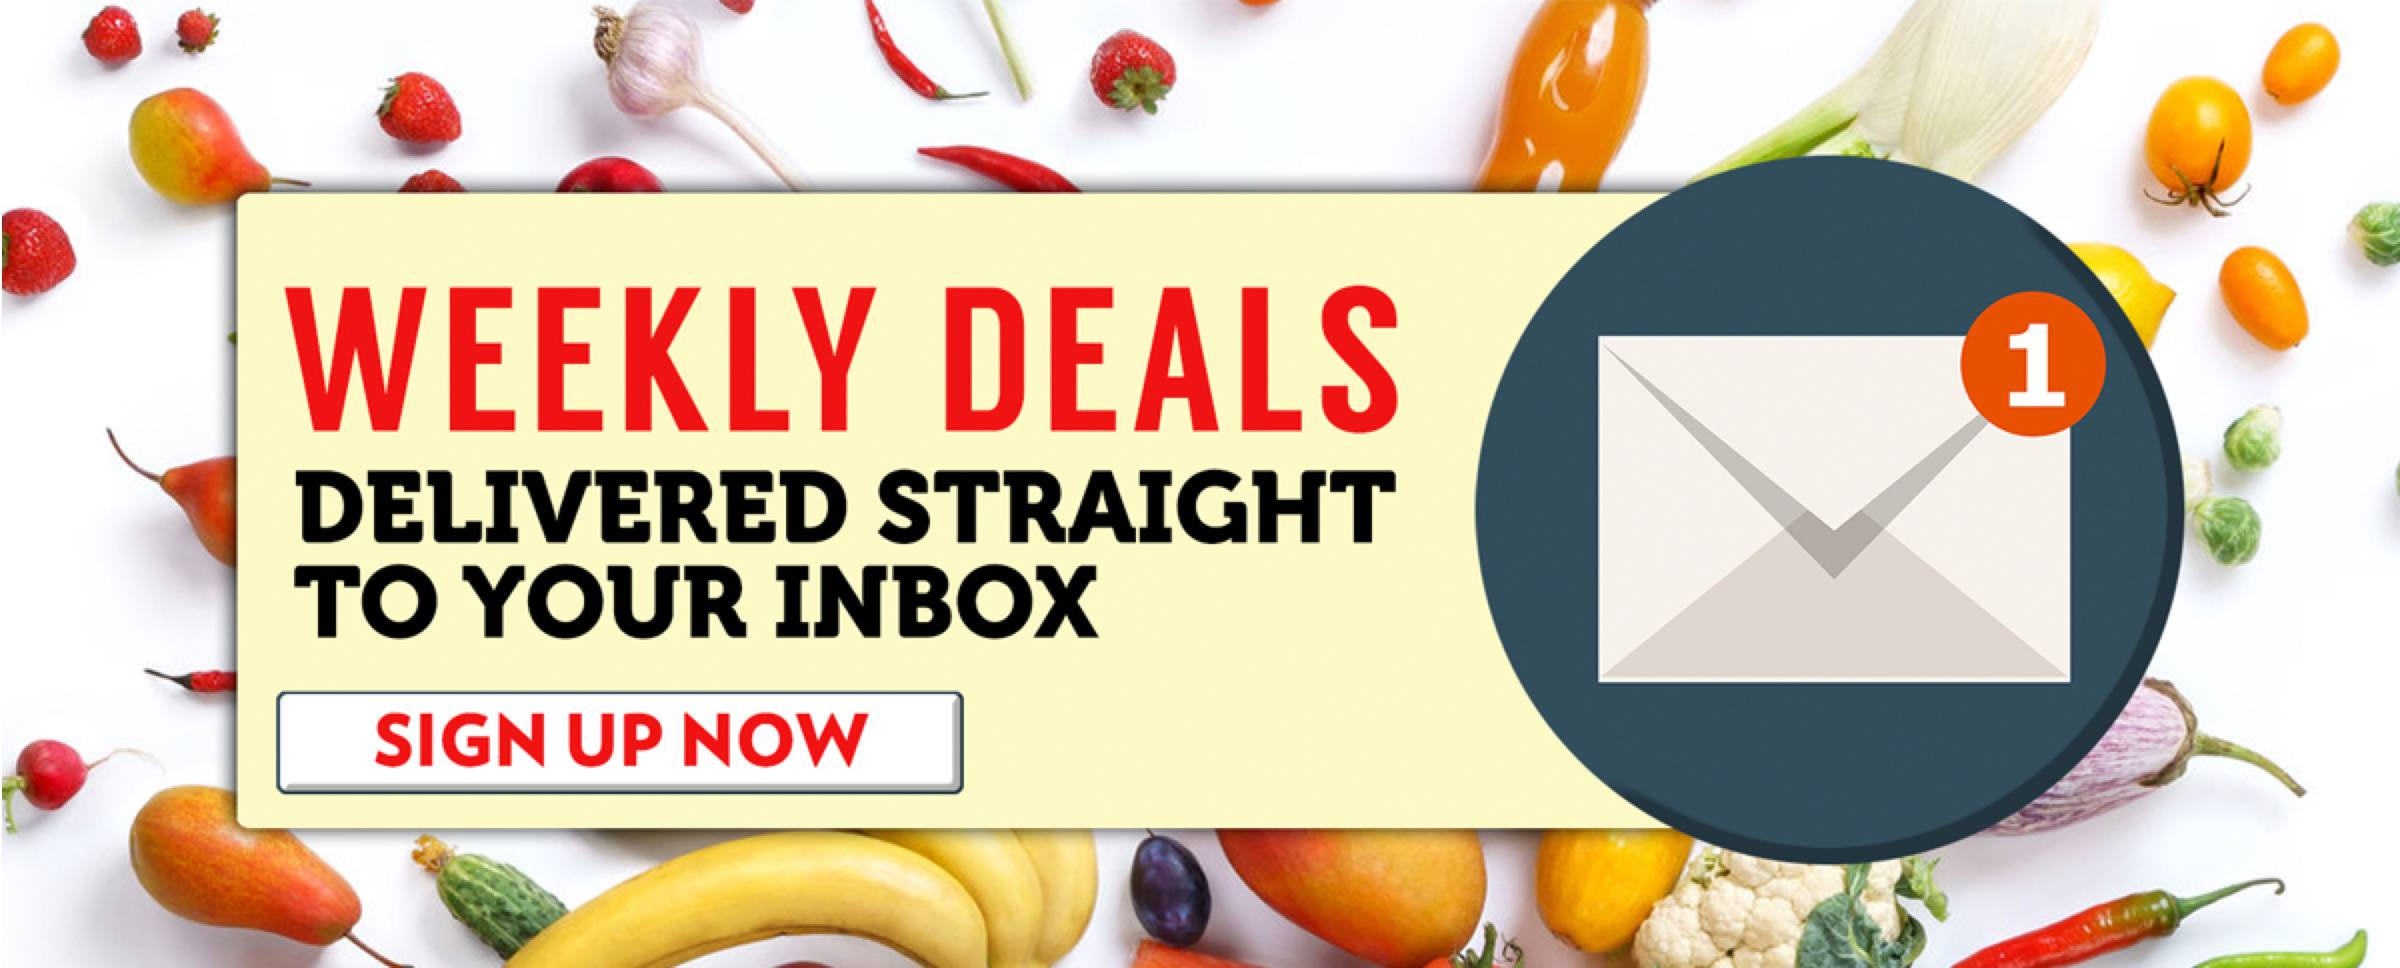 Weekly Deals Delivered Straight To Your Inbox